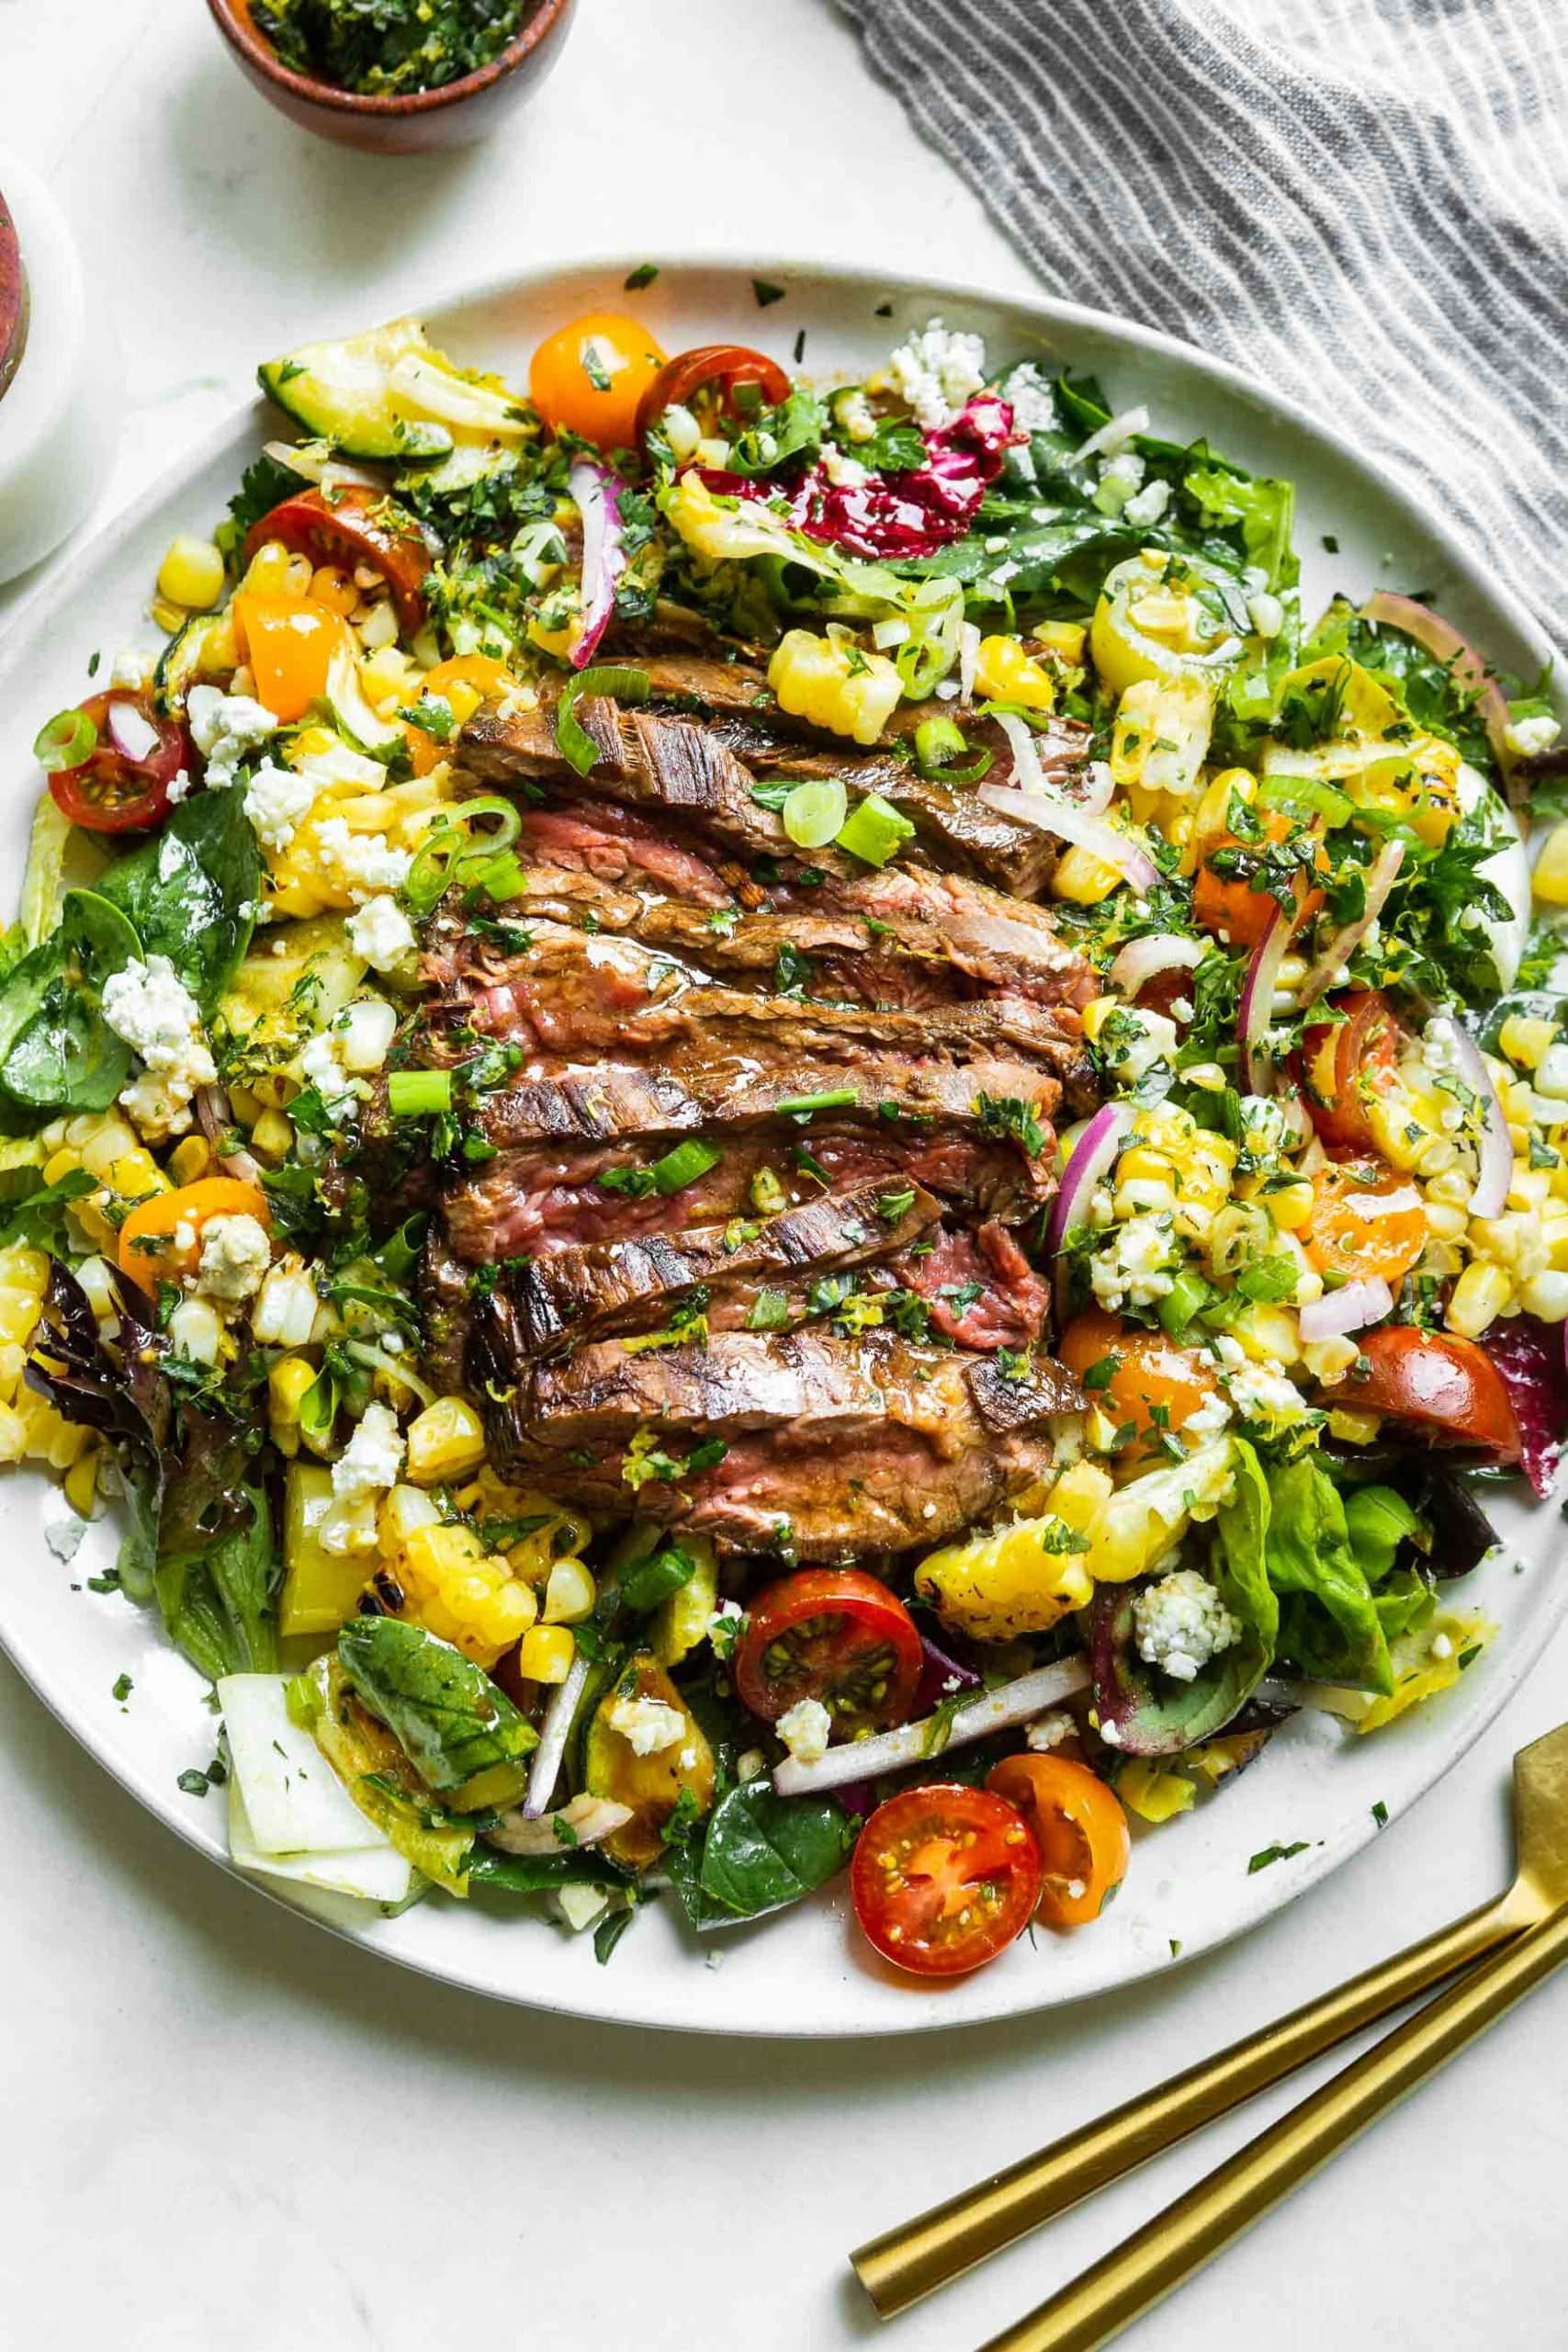 a photo of a large white plate full of a grilled steak and gorgonzola salad topped with grilled corn and gorgonzola cheese.